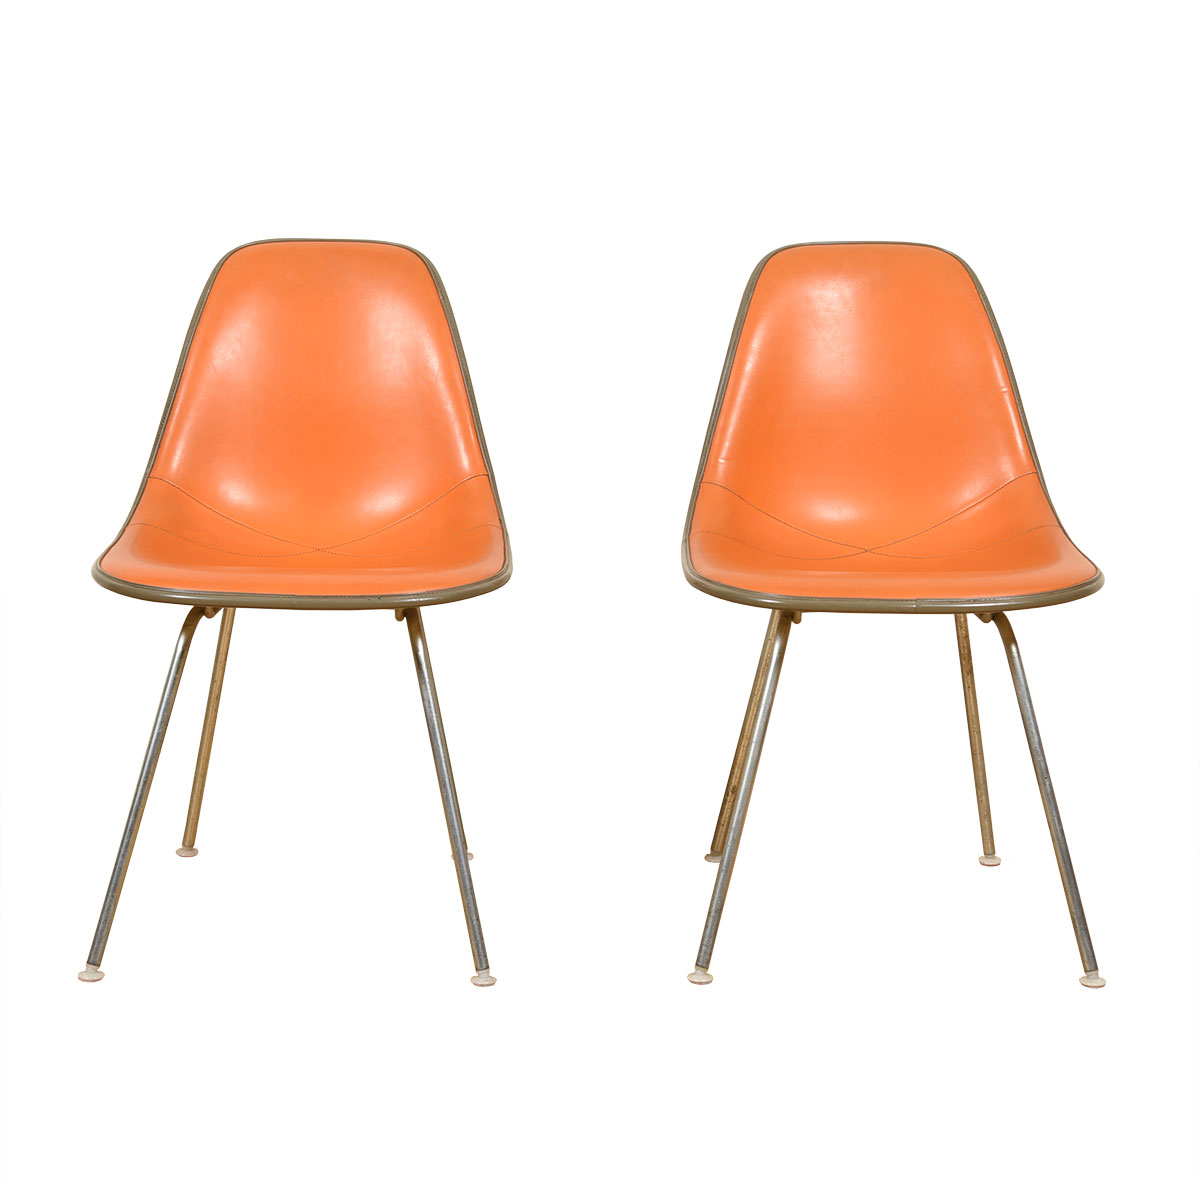 Pair of Orange Vintage Eames Chairs for Herman Miller